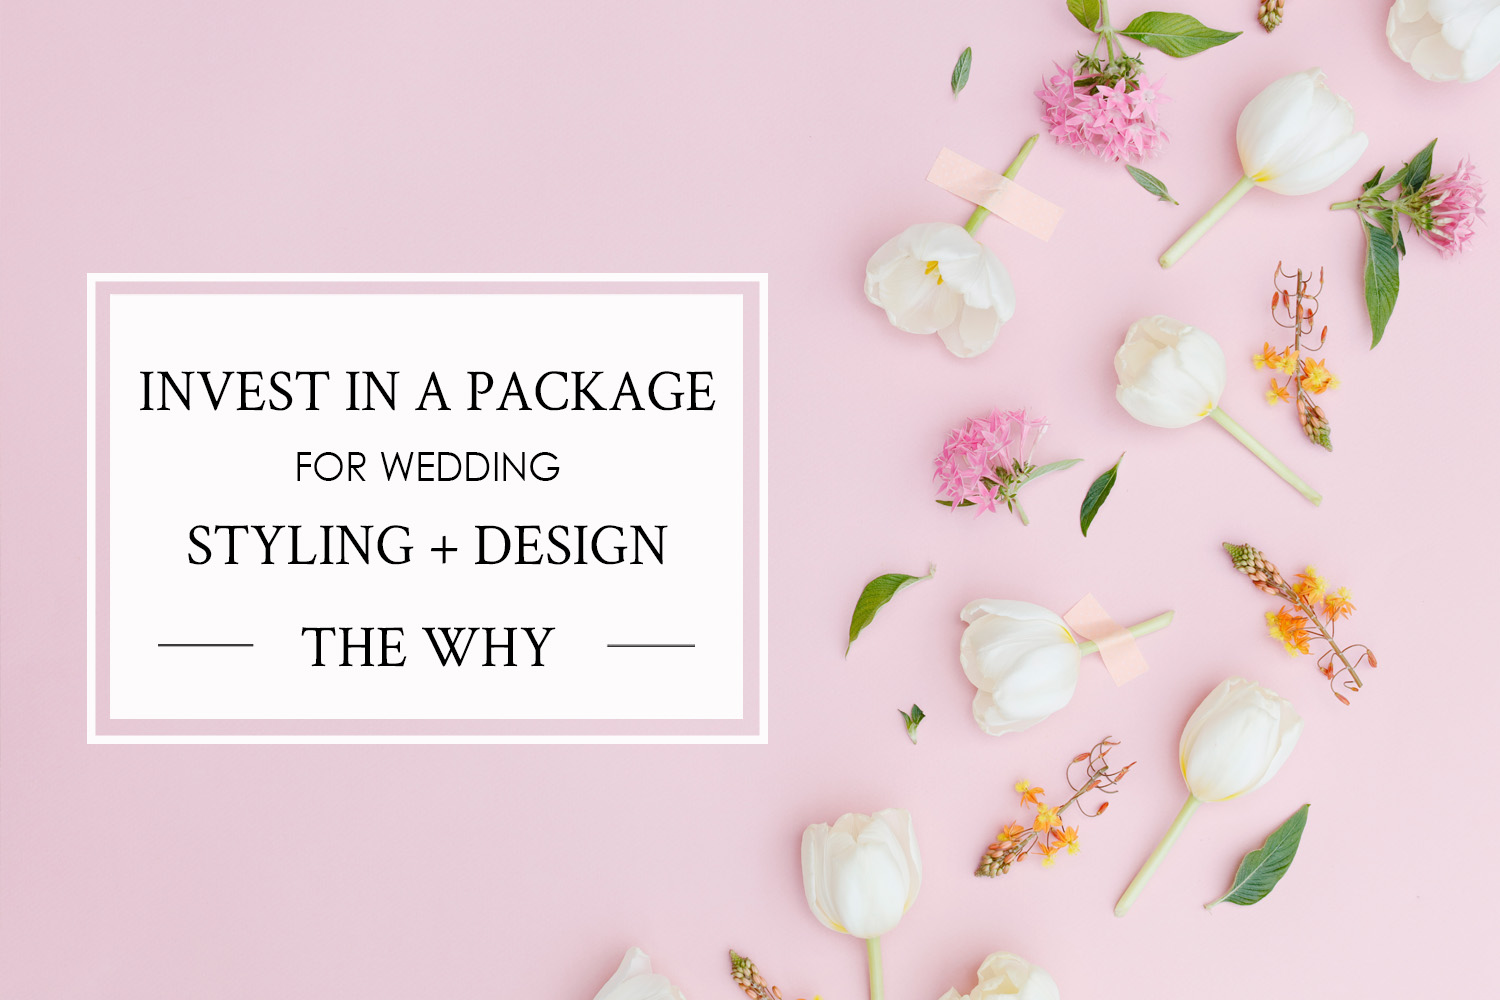 Why You Should Invest in a Wedding Design + Styling Package, Tips from Alexis of Salt Creative Company on Cavin Elizabeth's blog